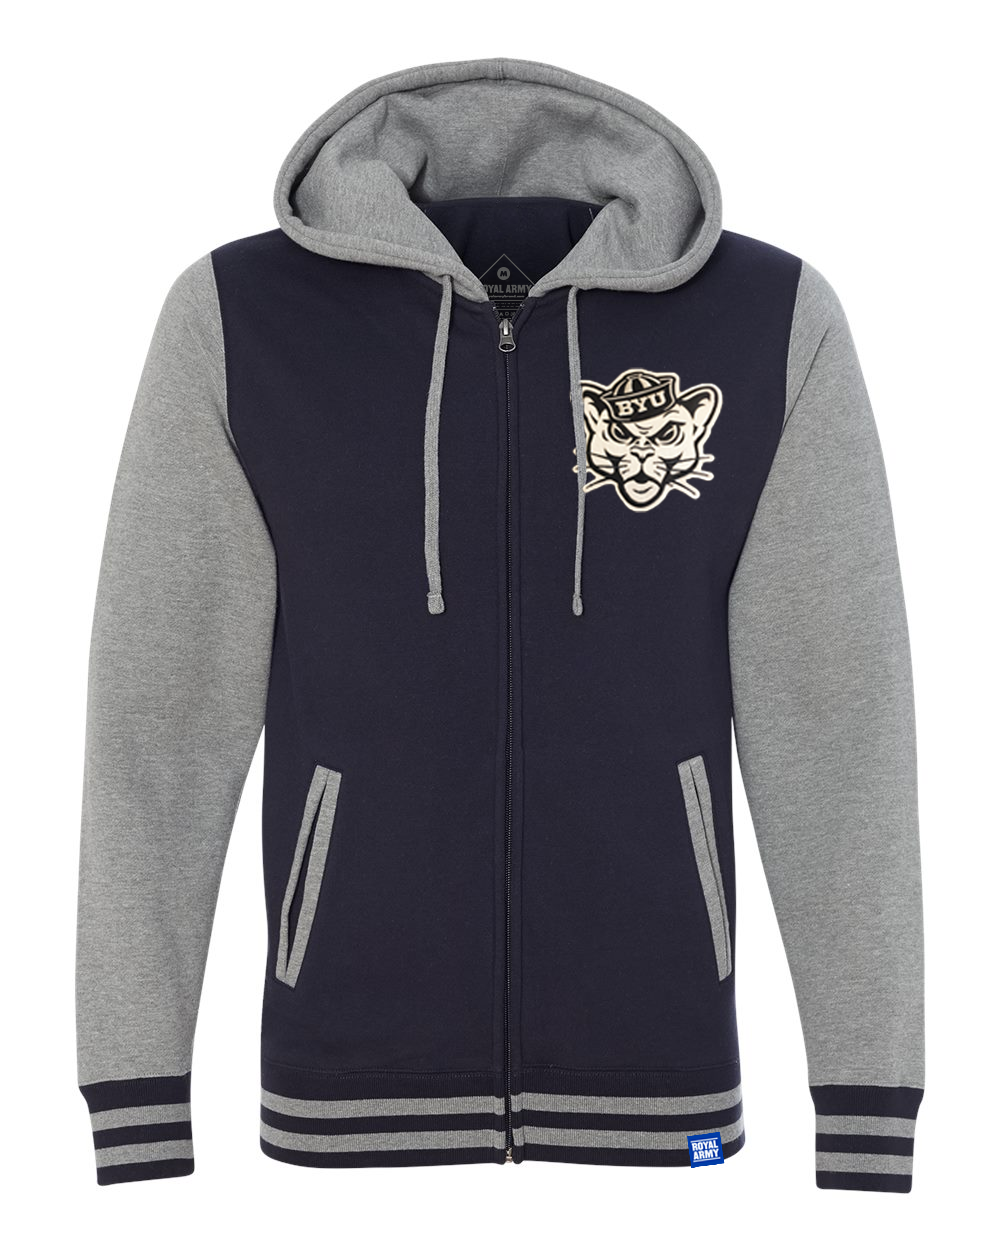 Royal Army Varsity Hoodie with Sailor Cougar Tackle Twill Patch